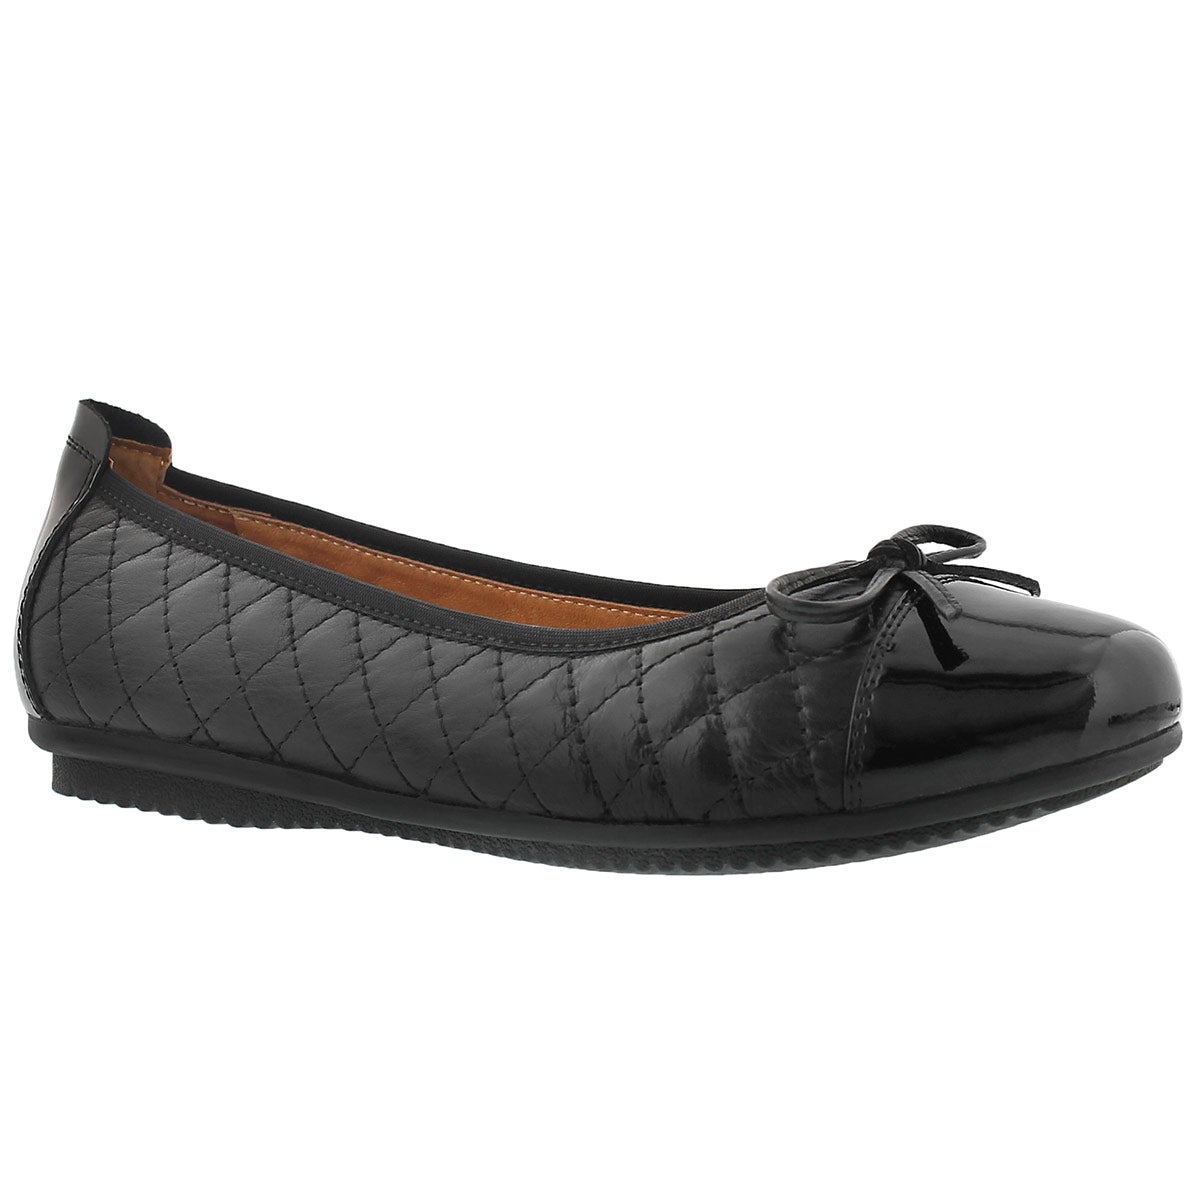 Lds Pippa 25 blk quilted ballerina flat